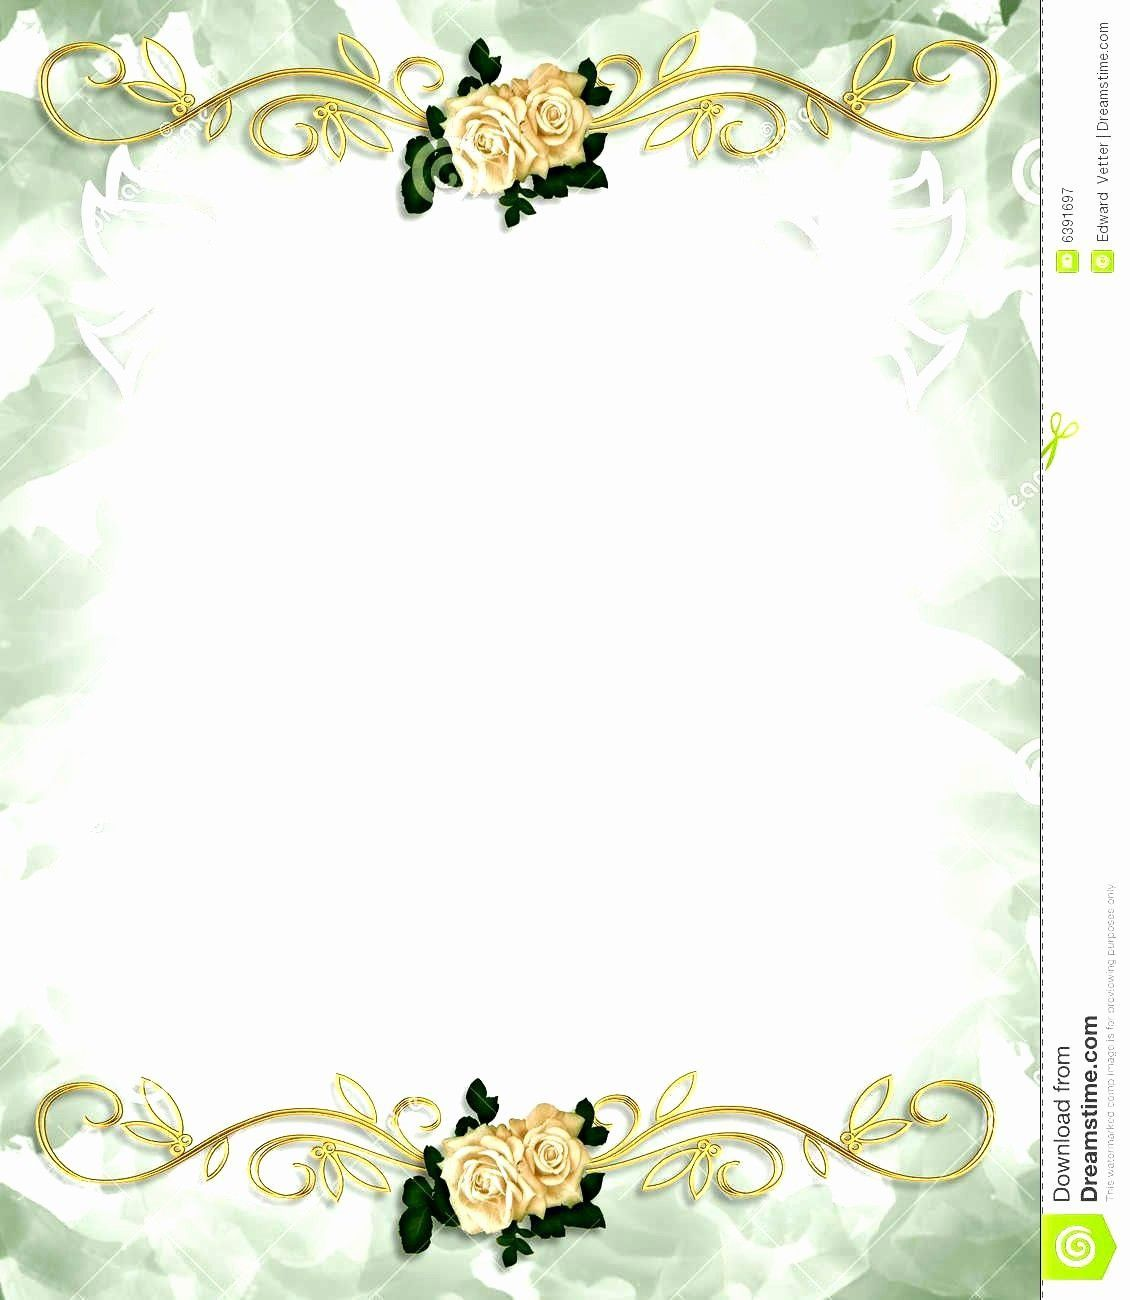 001 Top Free Download Invitation Card Template Highest Clarity  Templates Indian Wedding Design Software PngFull